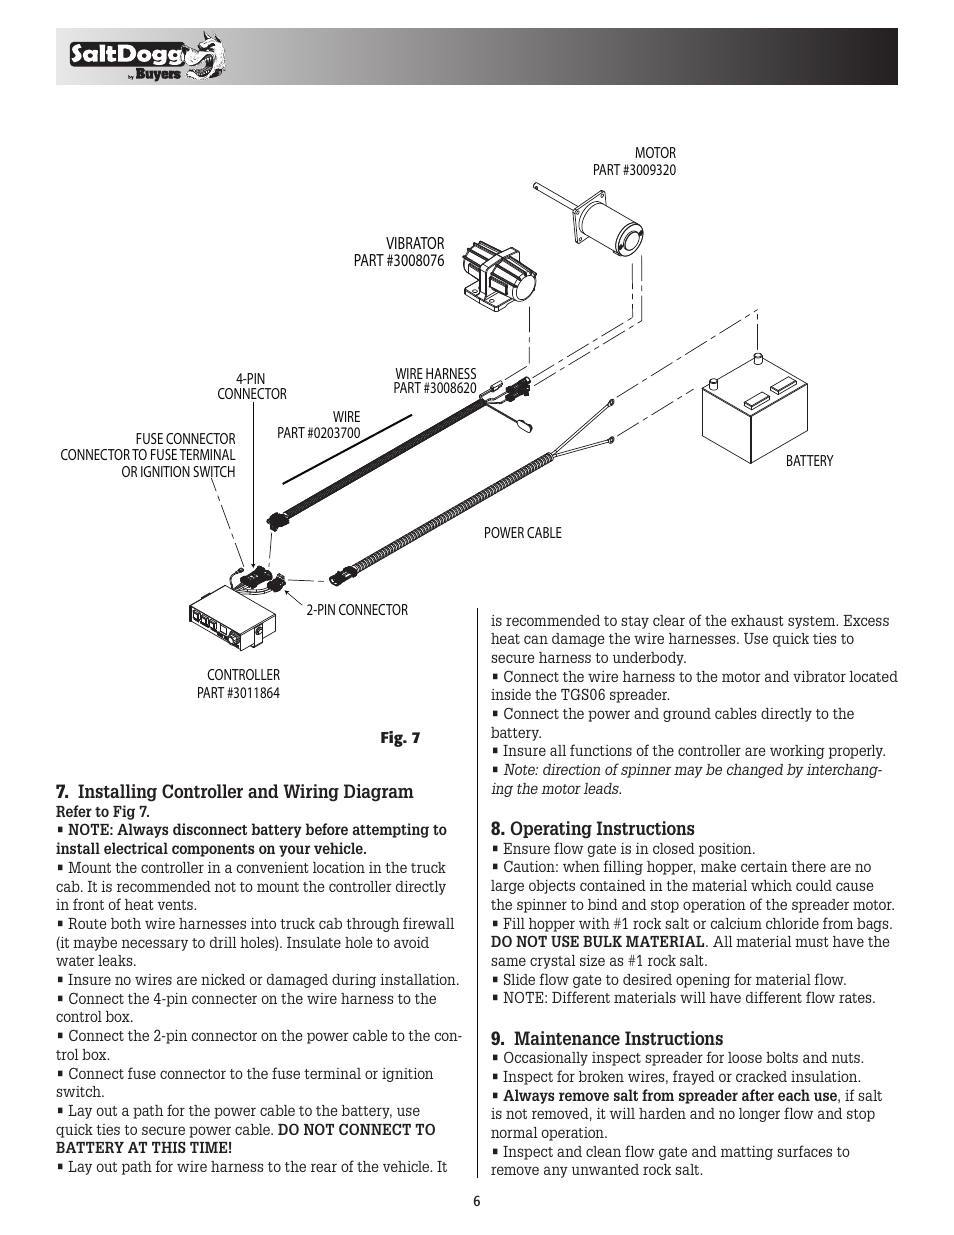 Saltdogg Tgs06 Salt Spreader User Manual Page 6 8 4 Pin Wire Harness